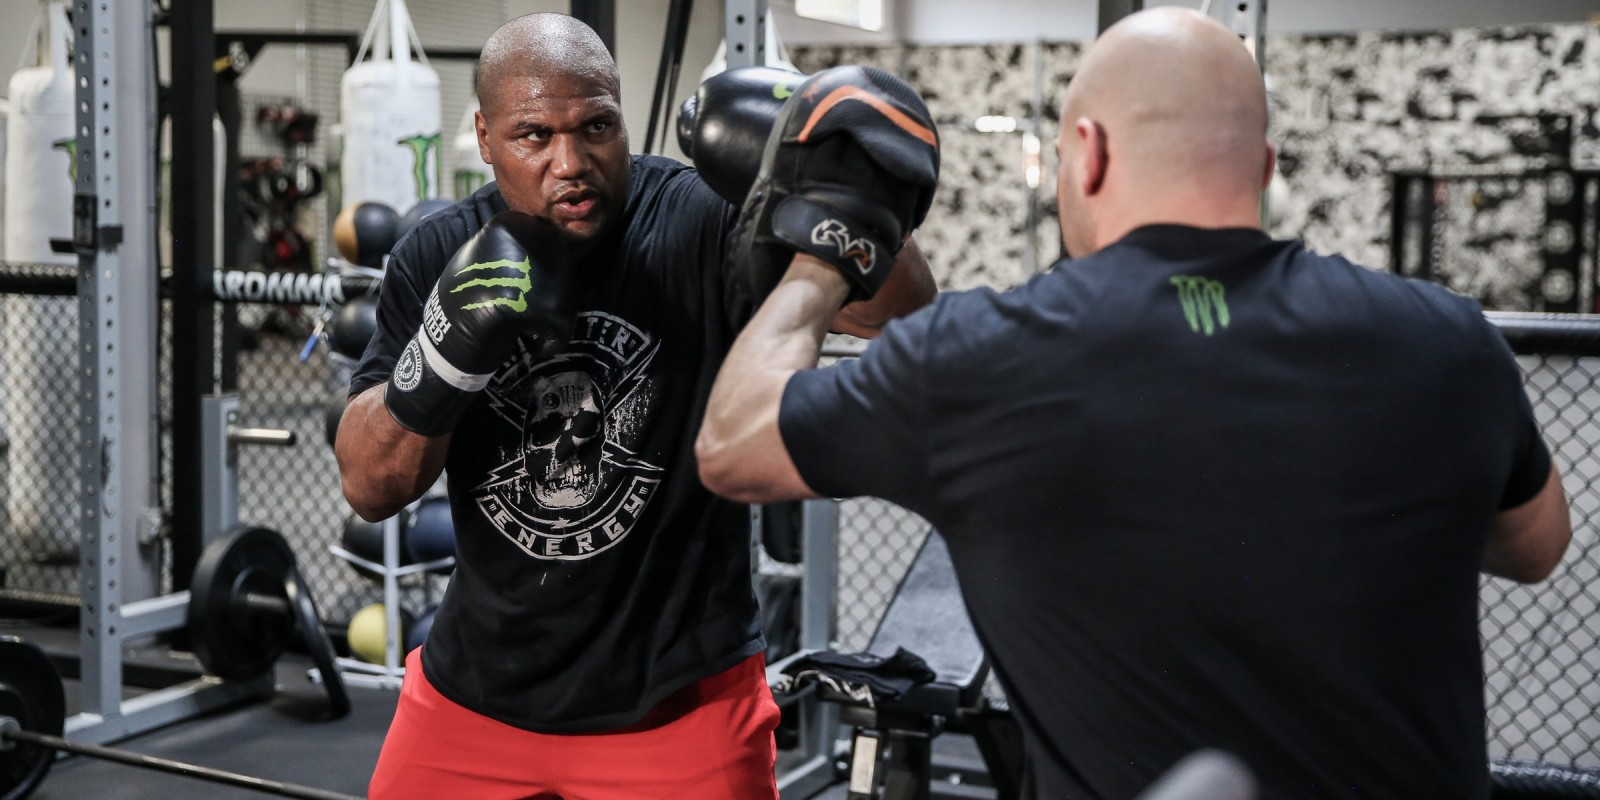 Bellator video shoot photos of Rampage Jackson at the HB Ultimate Training Center in Huntington Beach, CA